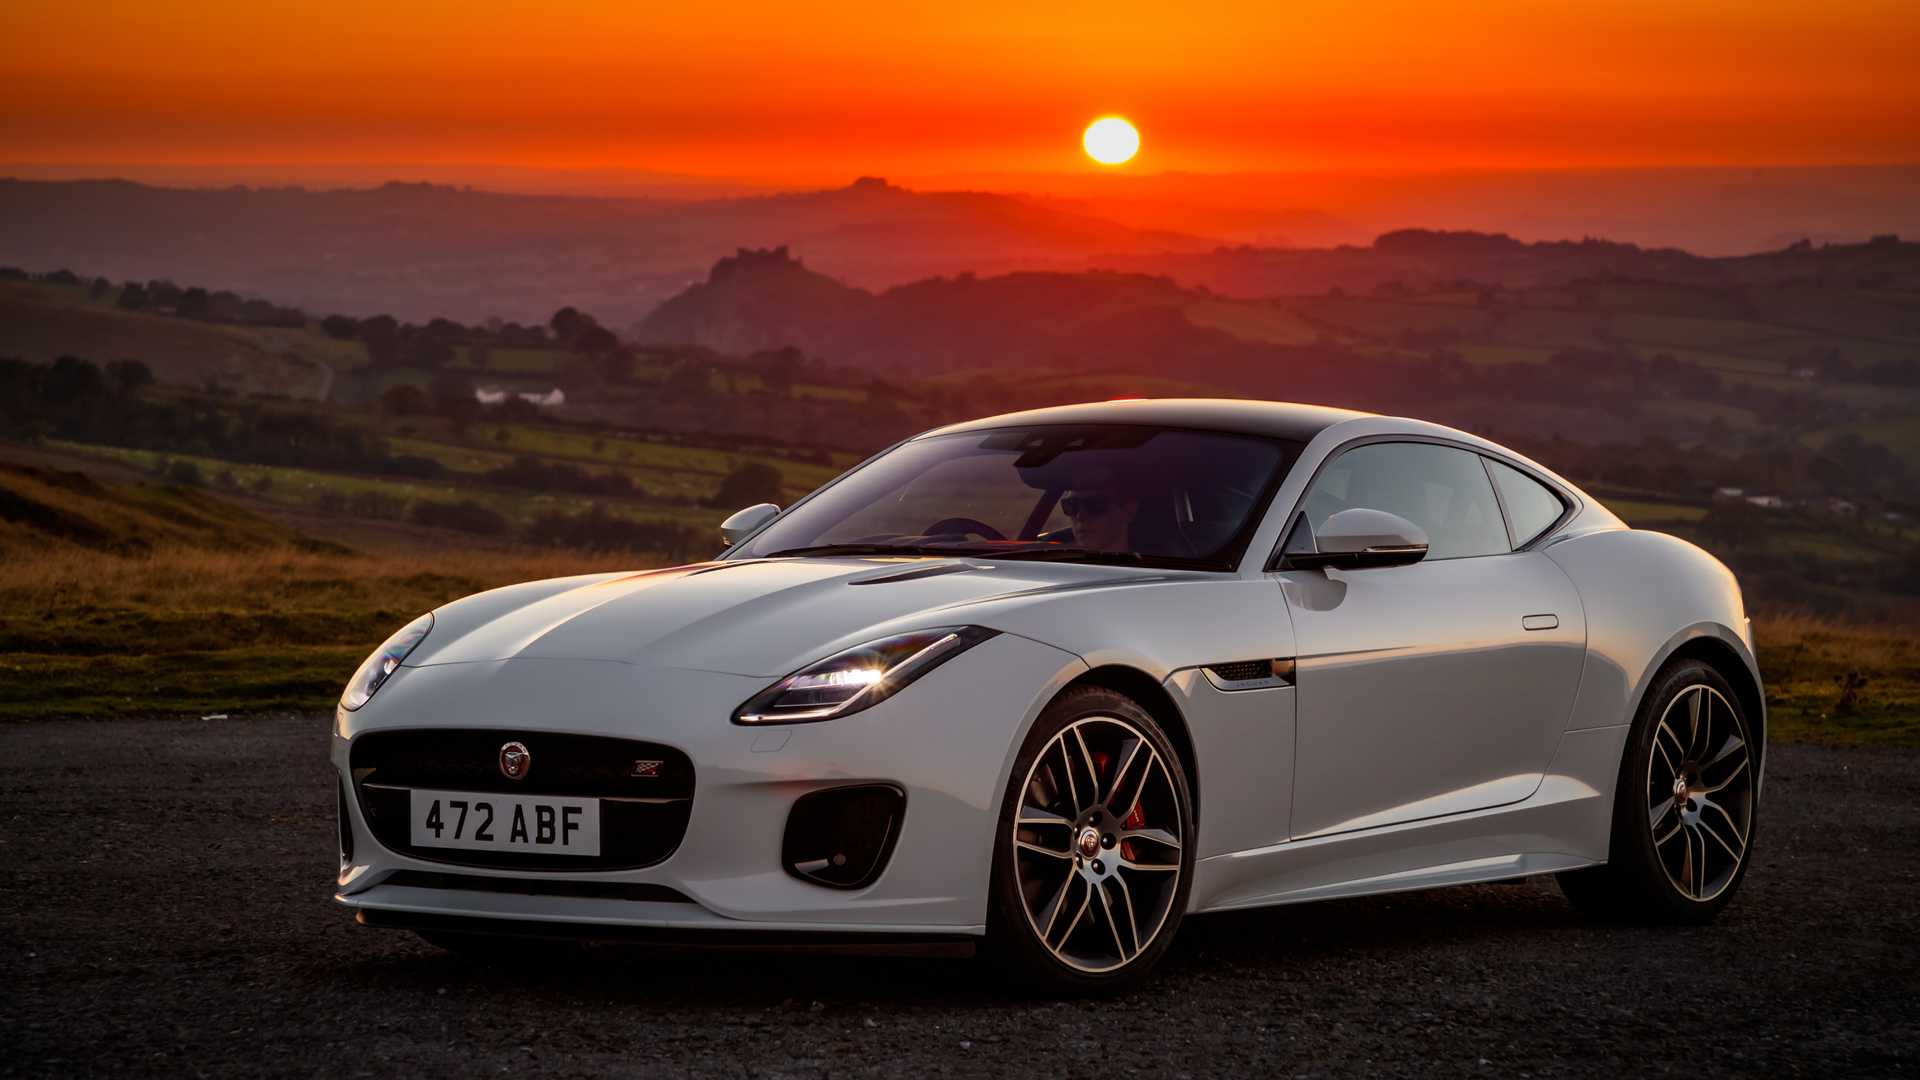 36 The Best 2020 Jaguar F Type Configurations